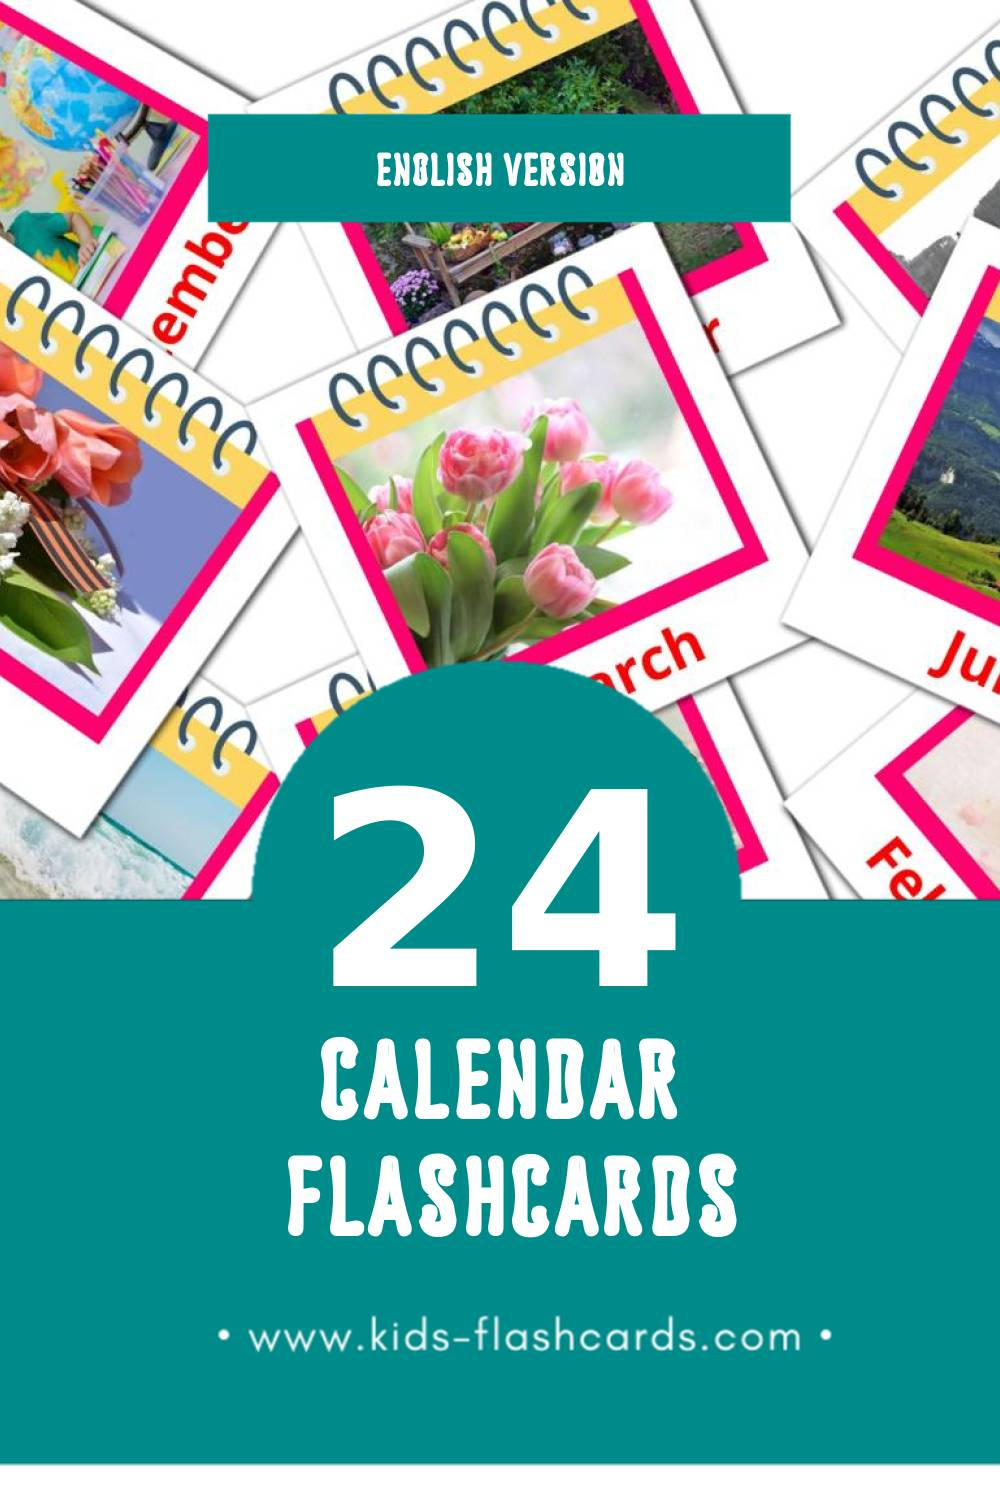 Visual Calendar Flashcards for Toddlers (24 cards in English)